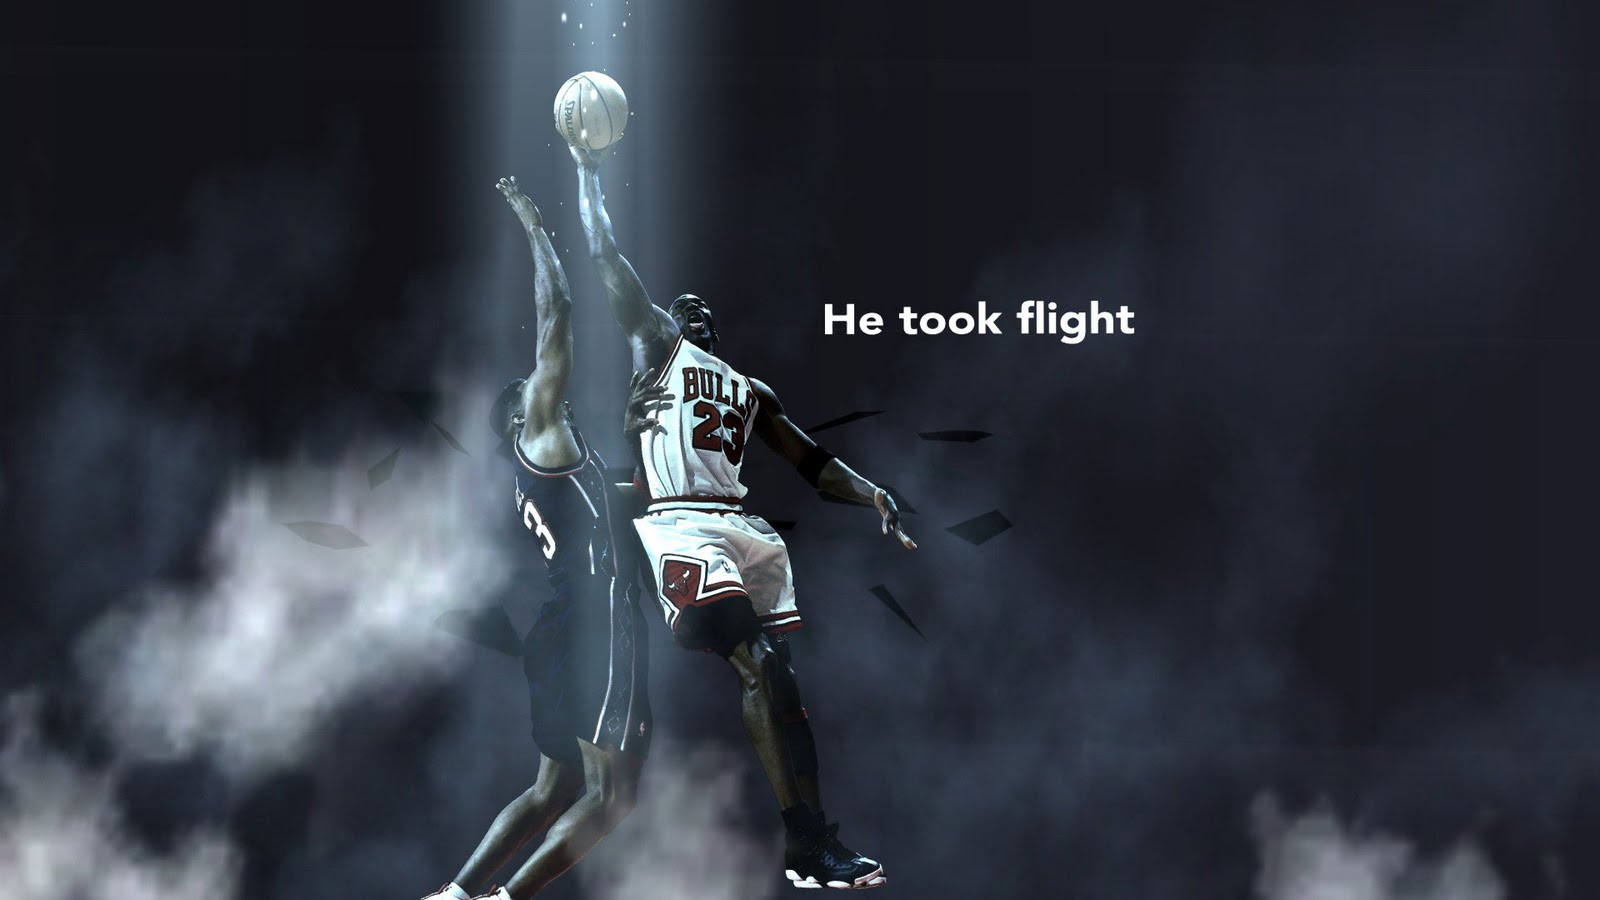 http://2.bp.blogspot.com/-rp-56a0CR6o/TeMpSu0WkLI/AAAAAAAAE-U/0v91OFAsL2U/s1600/Michael-Jordan-Playoffs-98-Dunk-Over-Gill-Widescreen-Wallpaper.jpg